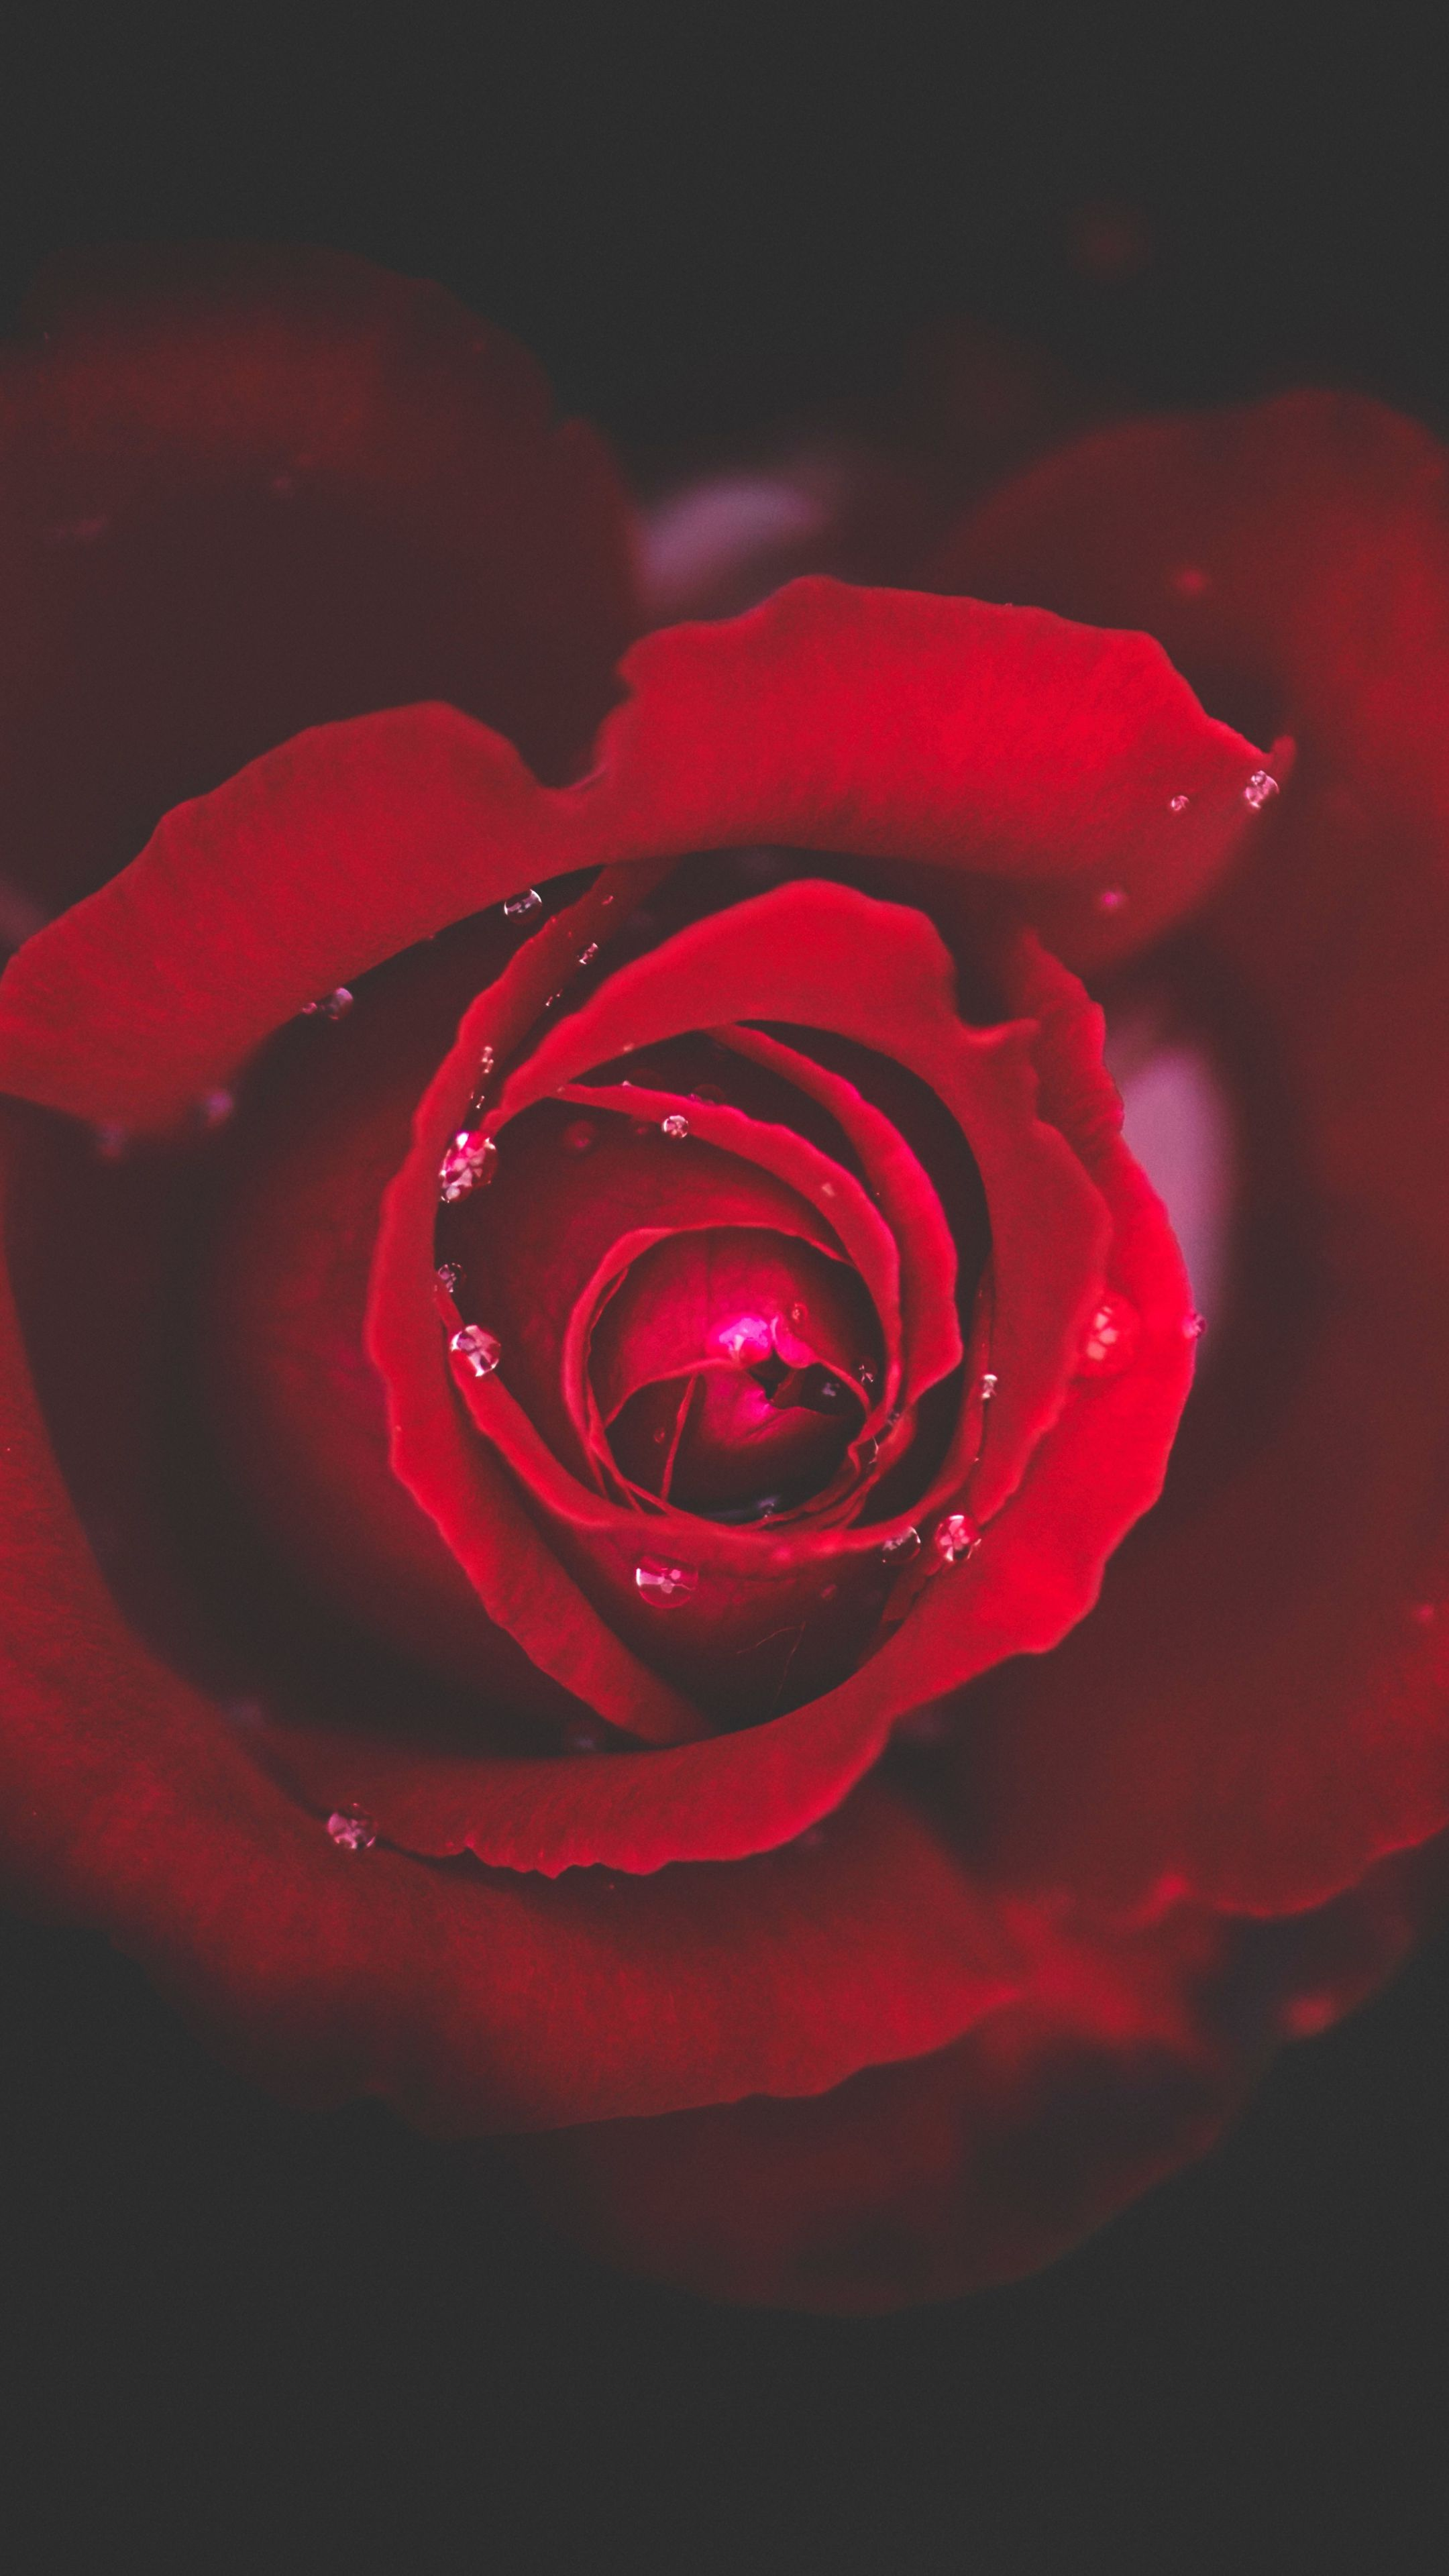 Download Wallpaper 2160x3840 Rose, Bud, Red, Drops, Close